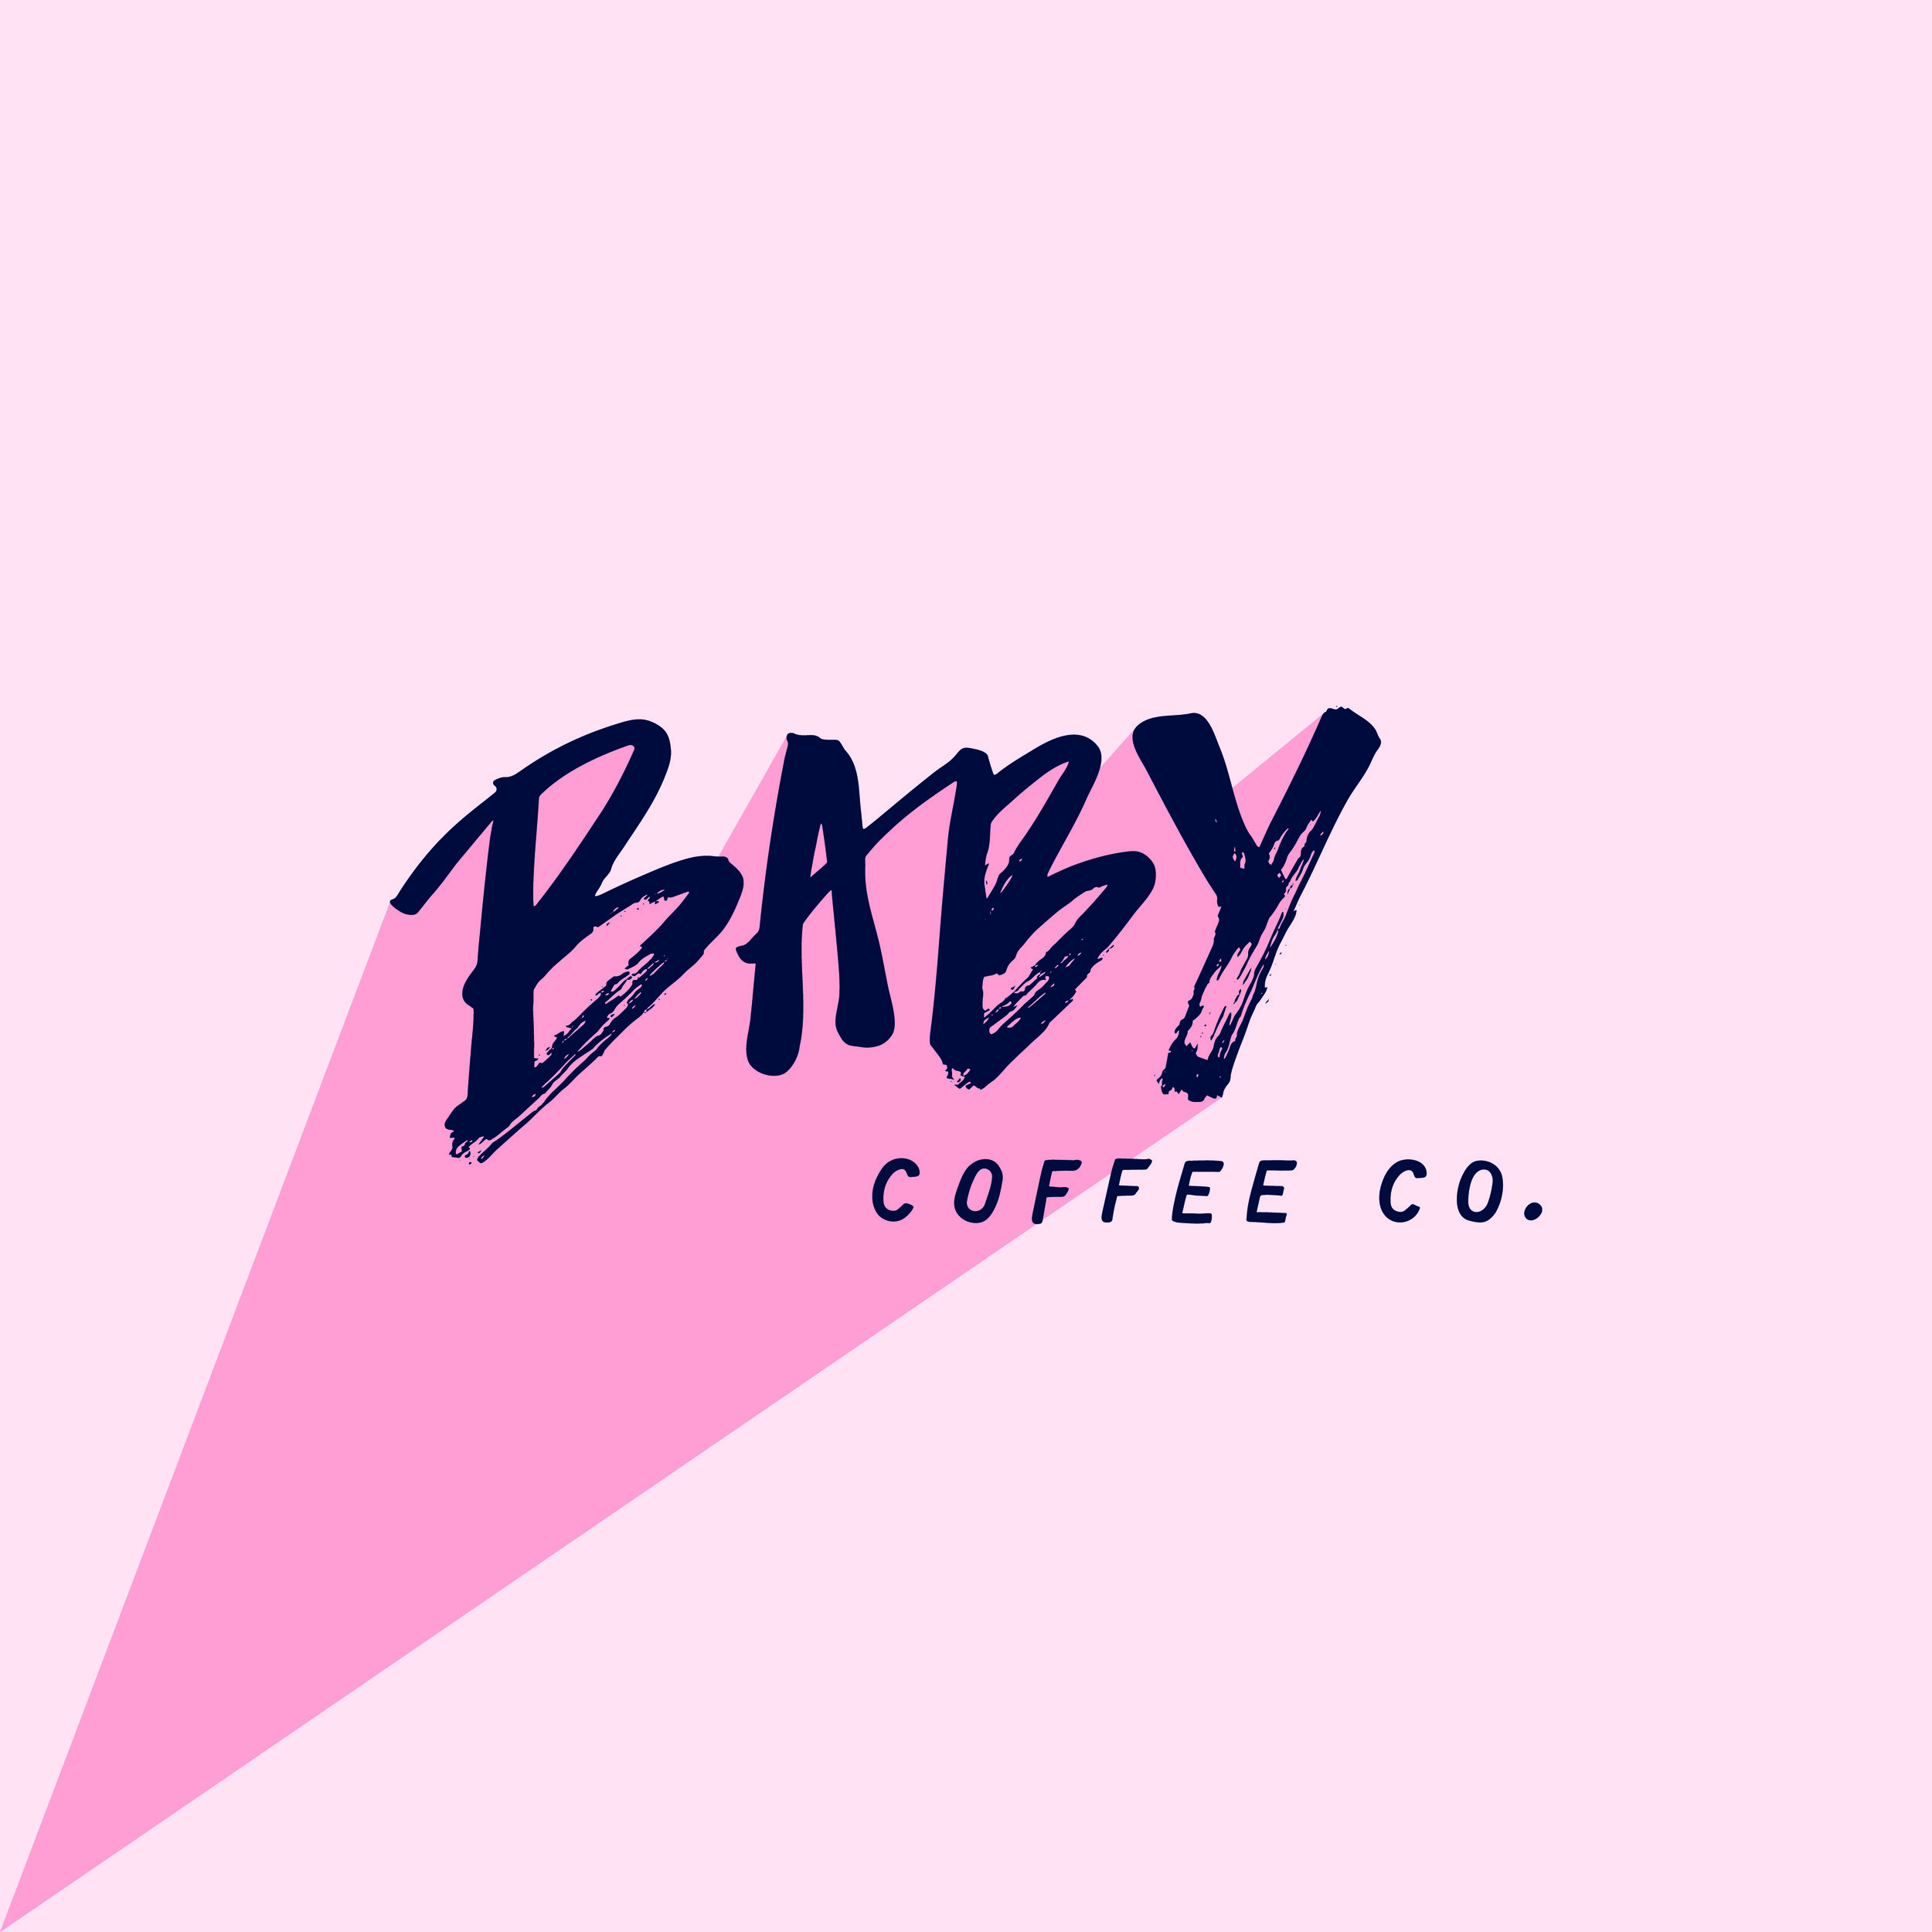 BABY COFFEE CO FULL COLOUR.jpg